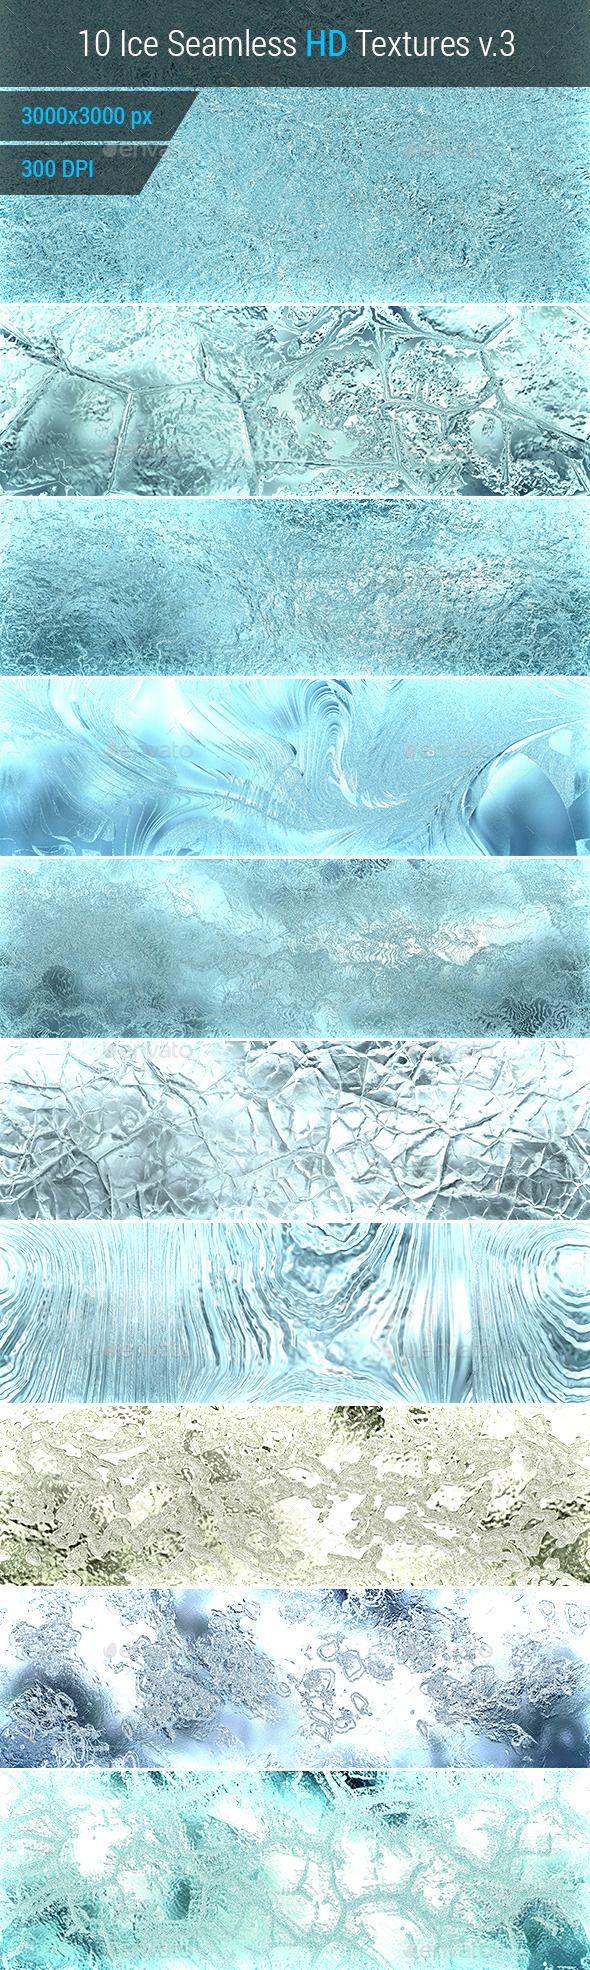 Ice Seamless and Tileable Background Texture v.3